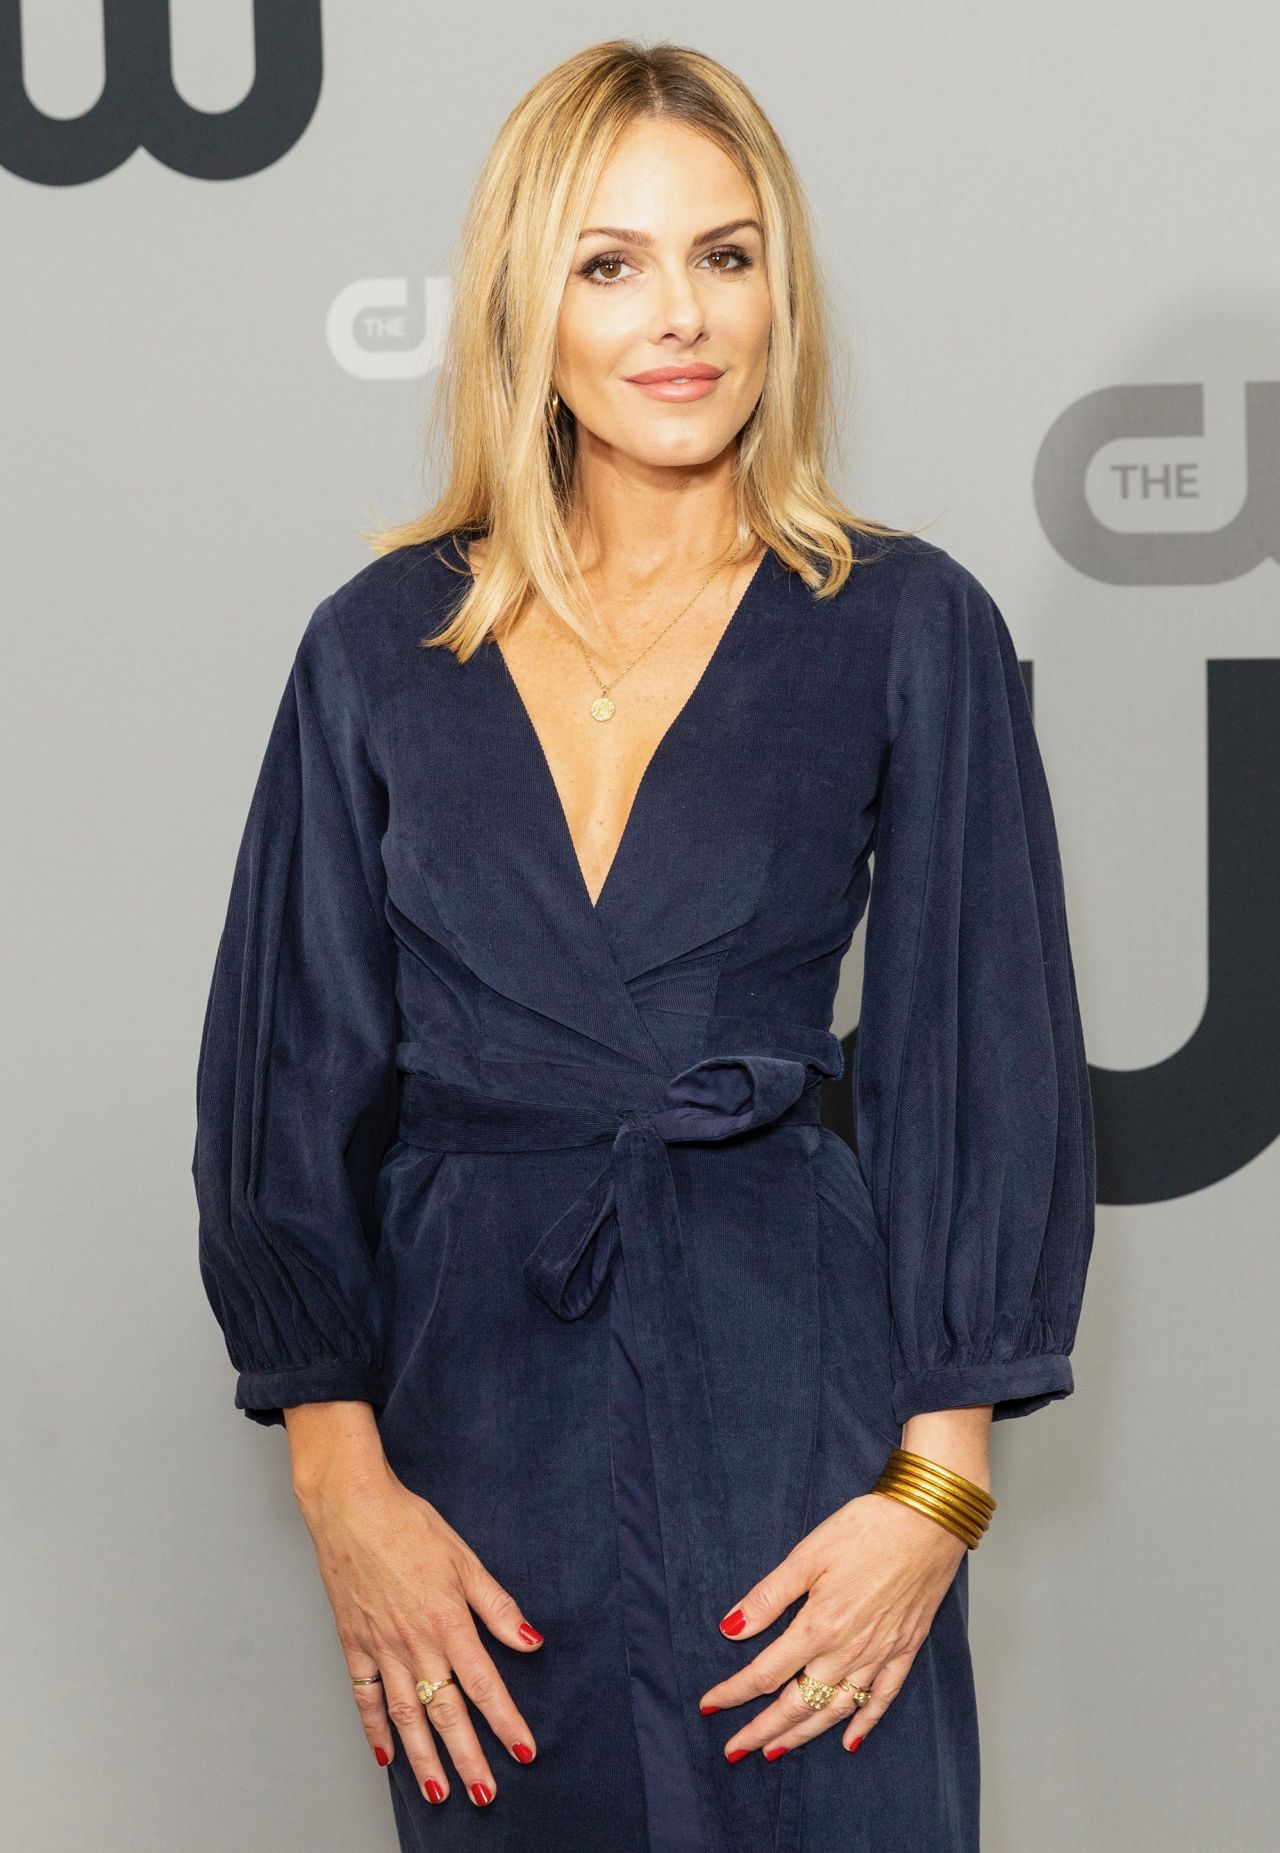 Monet Mazur Cw Network Upfront Presentation In Nyc 05 17